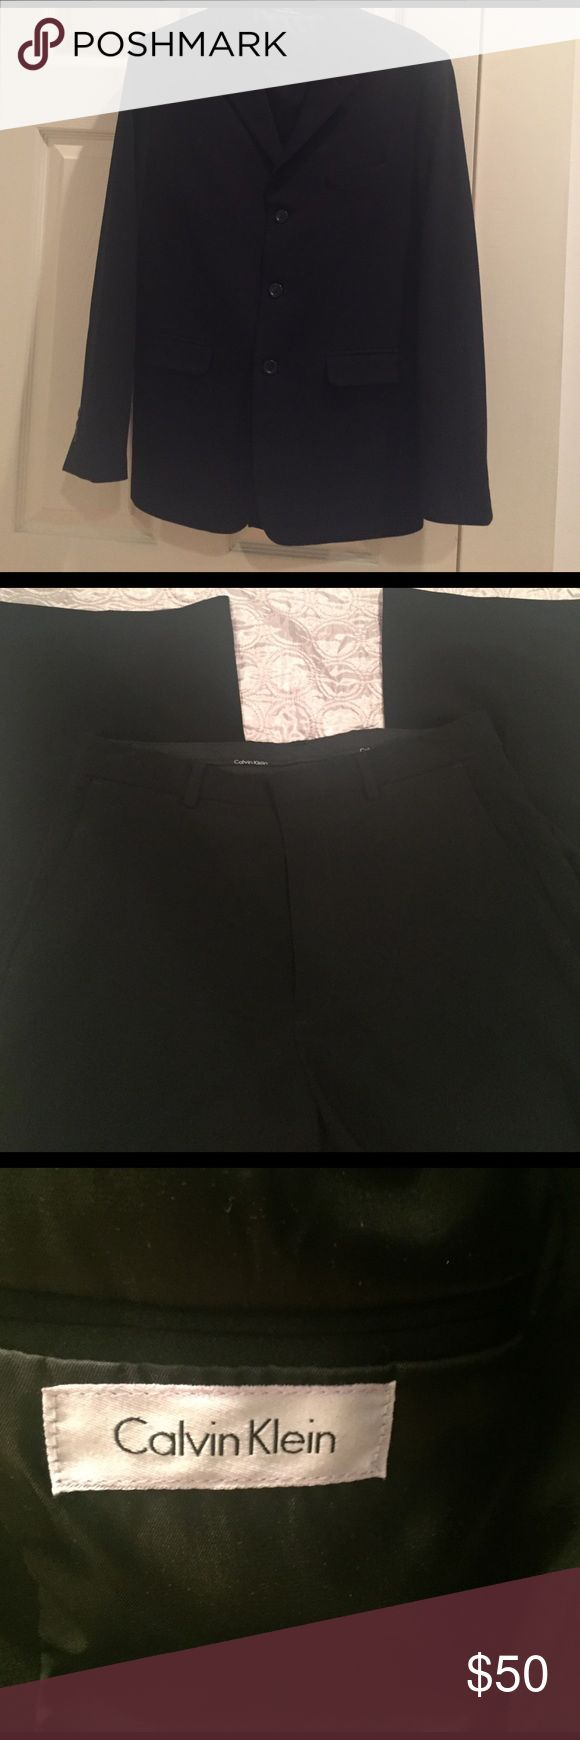 Calvin Klein boys black suit Calvin Klein black suit. Boys size 18 in excellent condition only worn once no stains. Calvin Klein Matching Sets